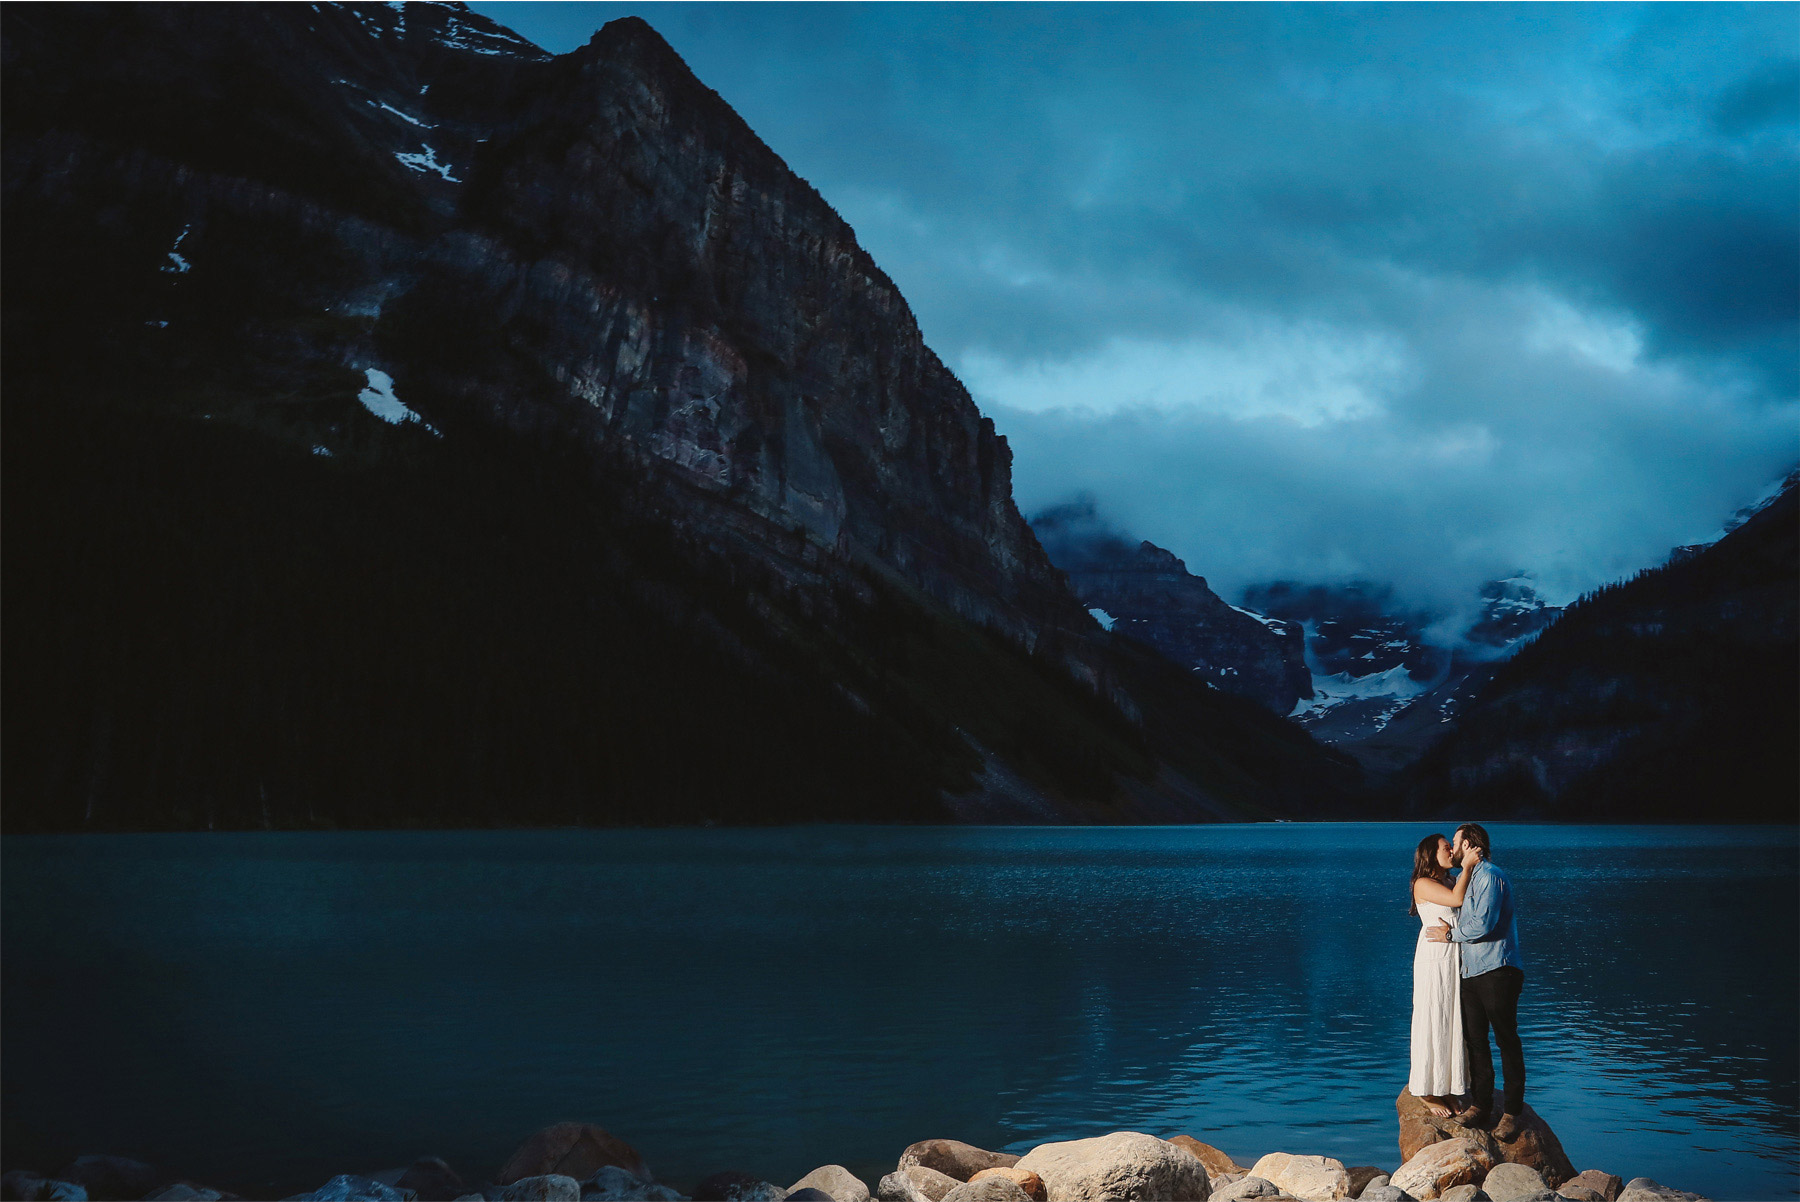 16-Banff-Canada-Engagement-Photography-by-Vick-Photography-Mountains-Lake-Louise-Night-Photography-Lizz-and-Brady.jpg